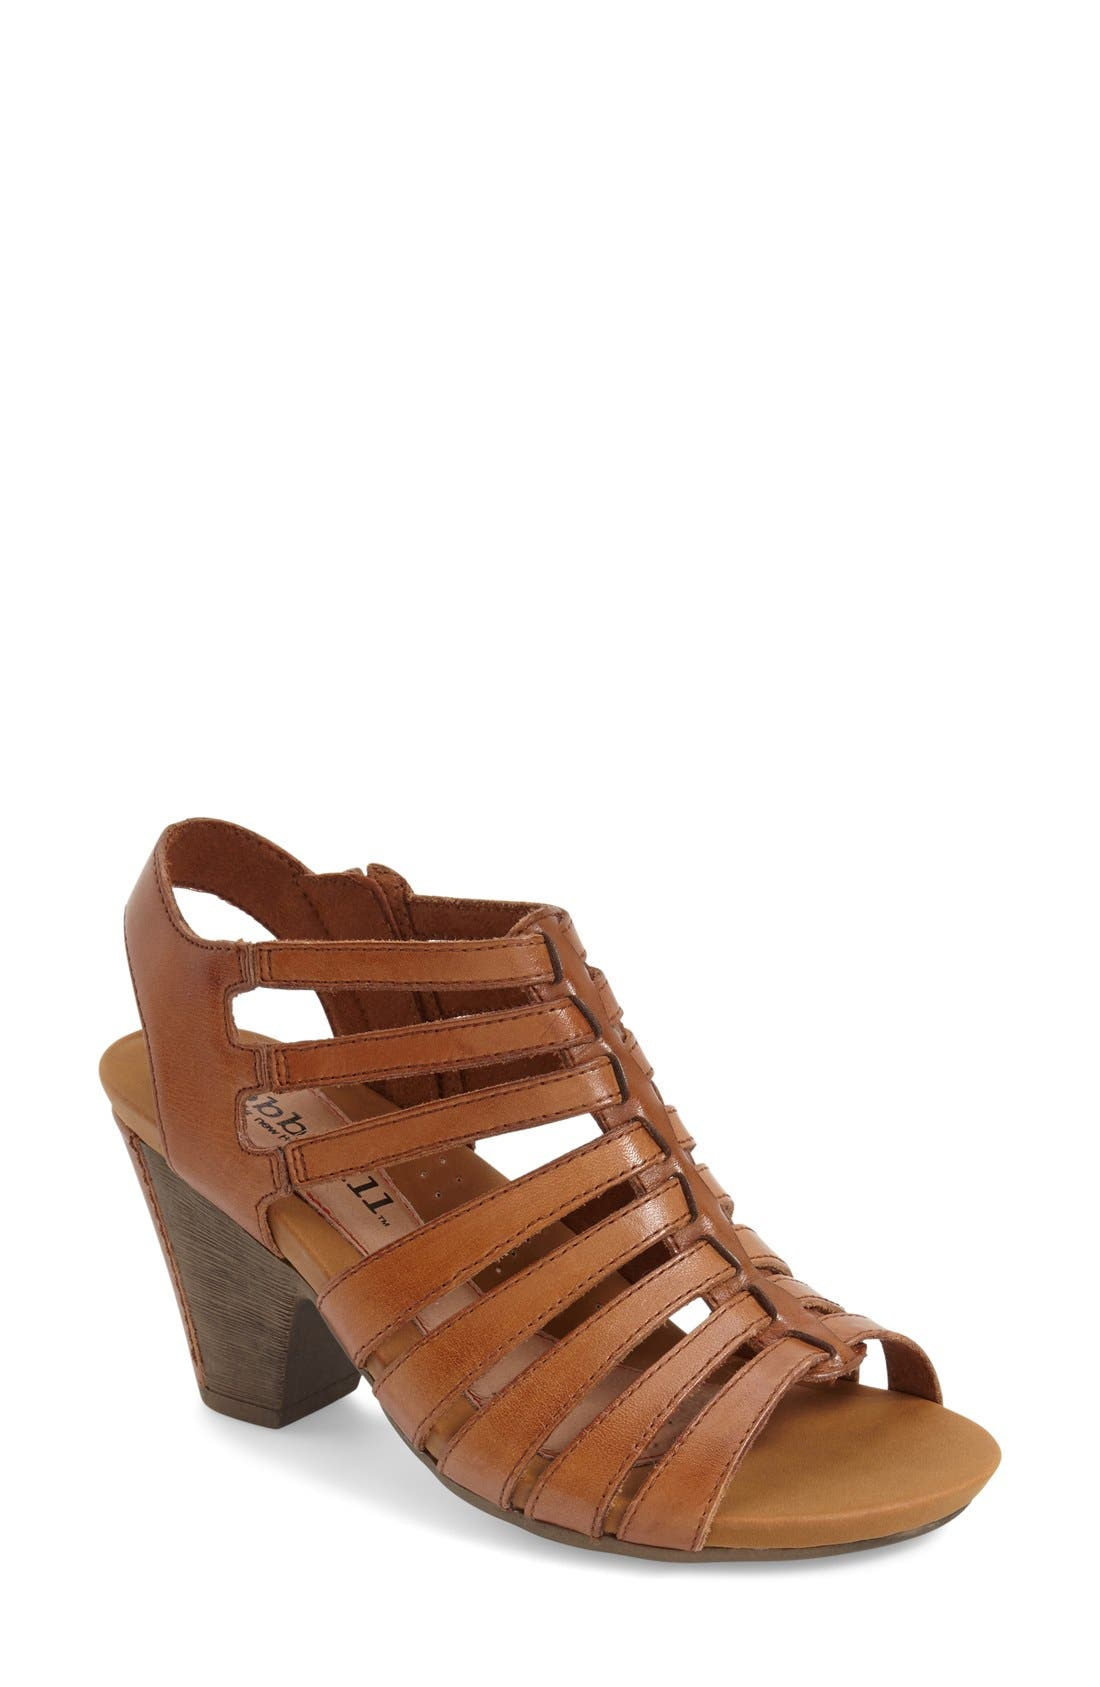 'Taylor' Caged Sandal,                         Main,                         color, TAN LEATHER